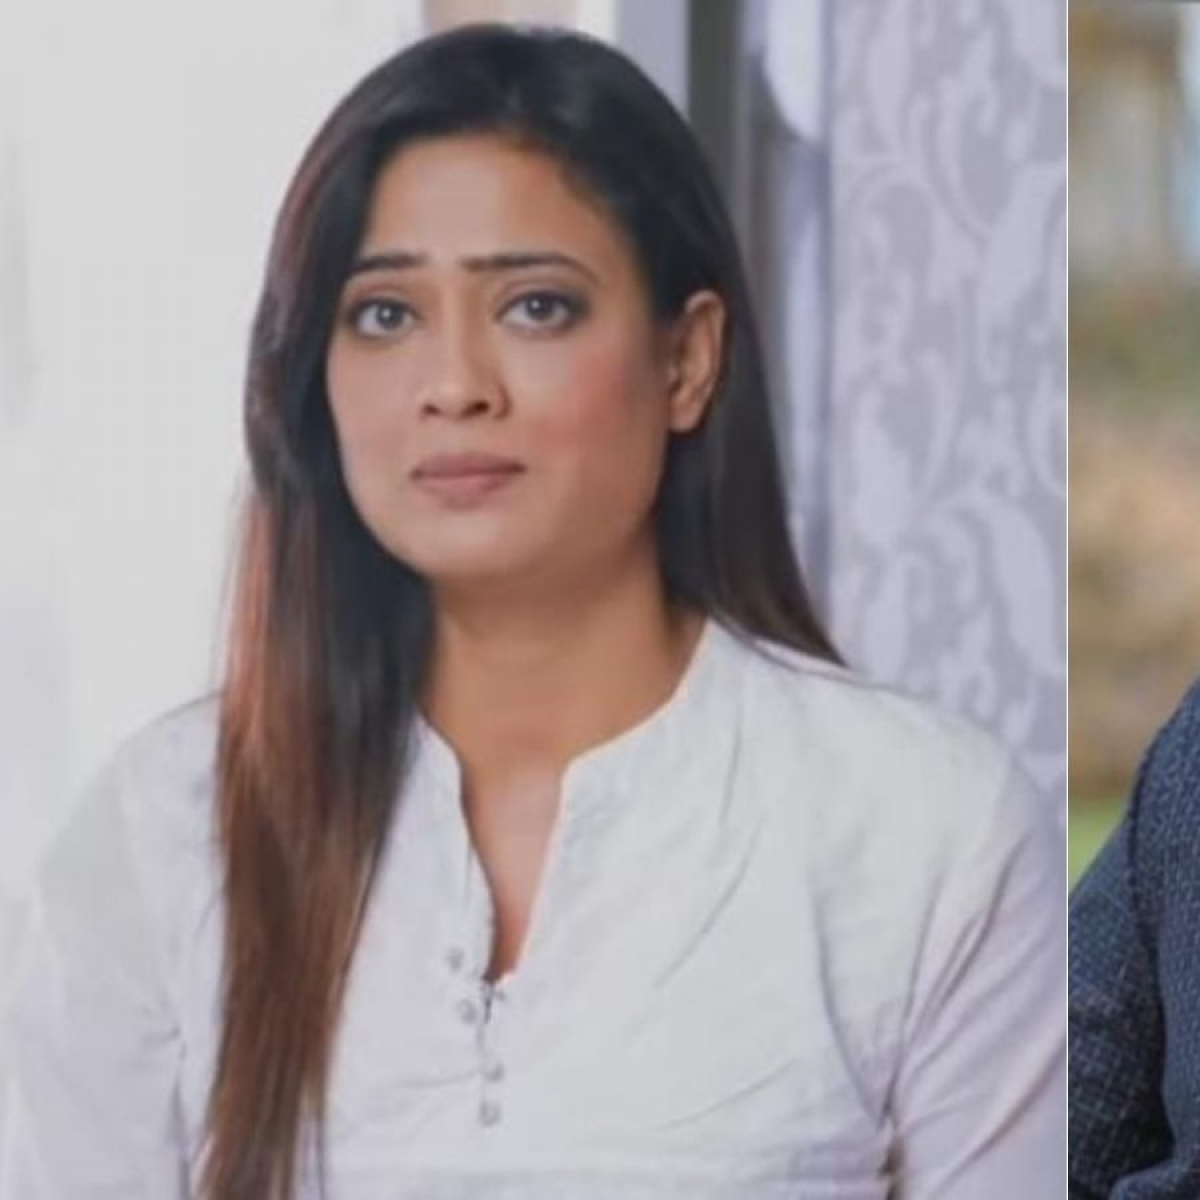 Watch: Shweta Tiwari shares shocking CCTV footage of Abhinav Kohli 'physically abusing' her